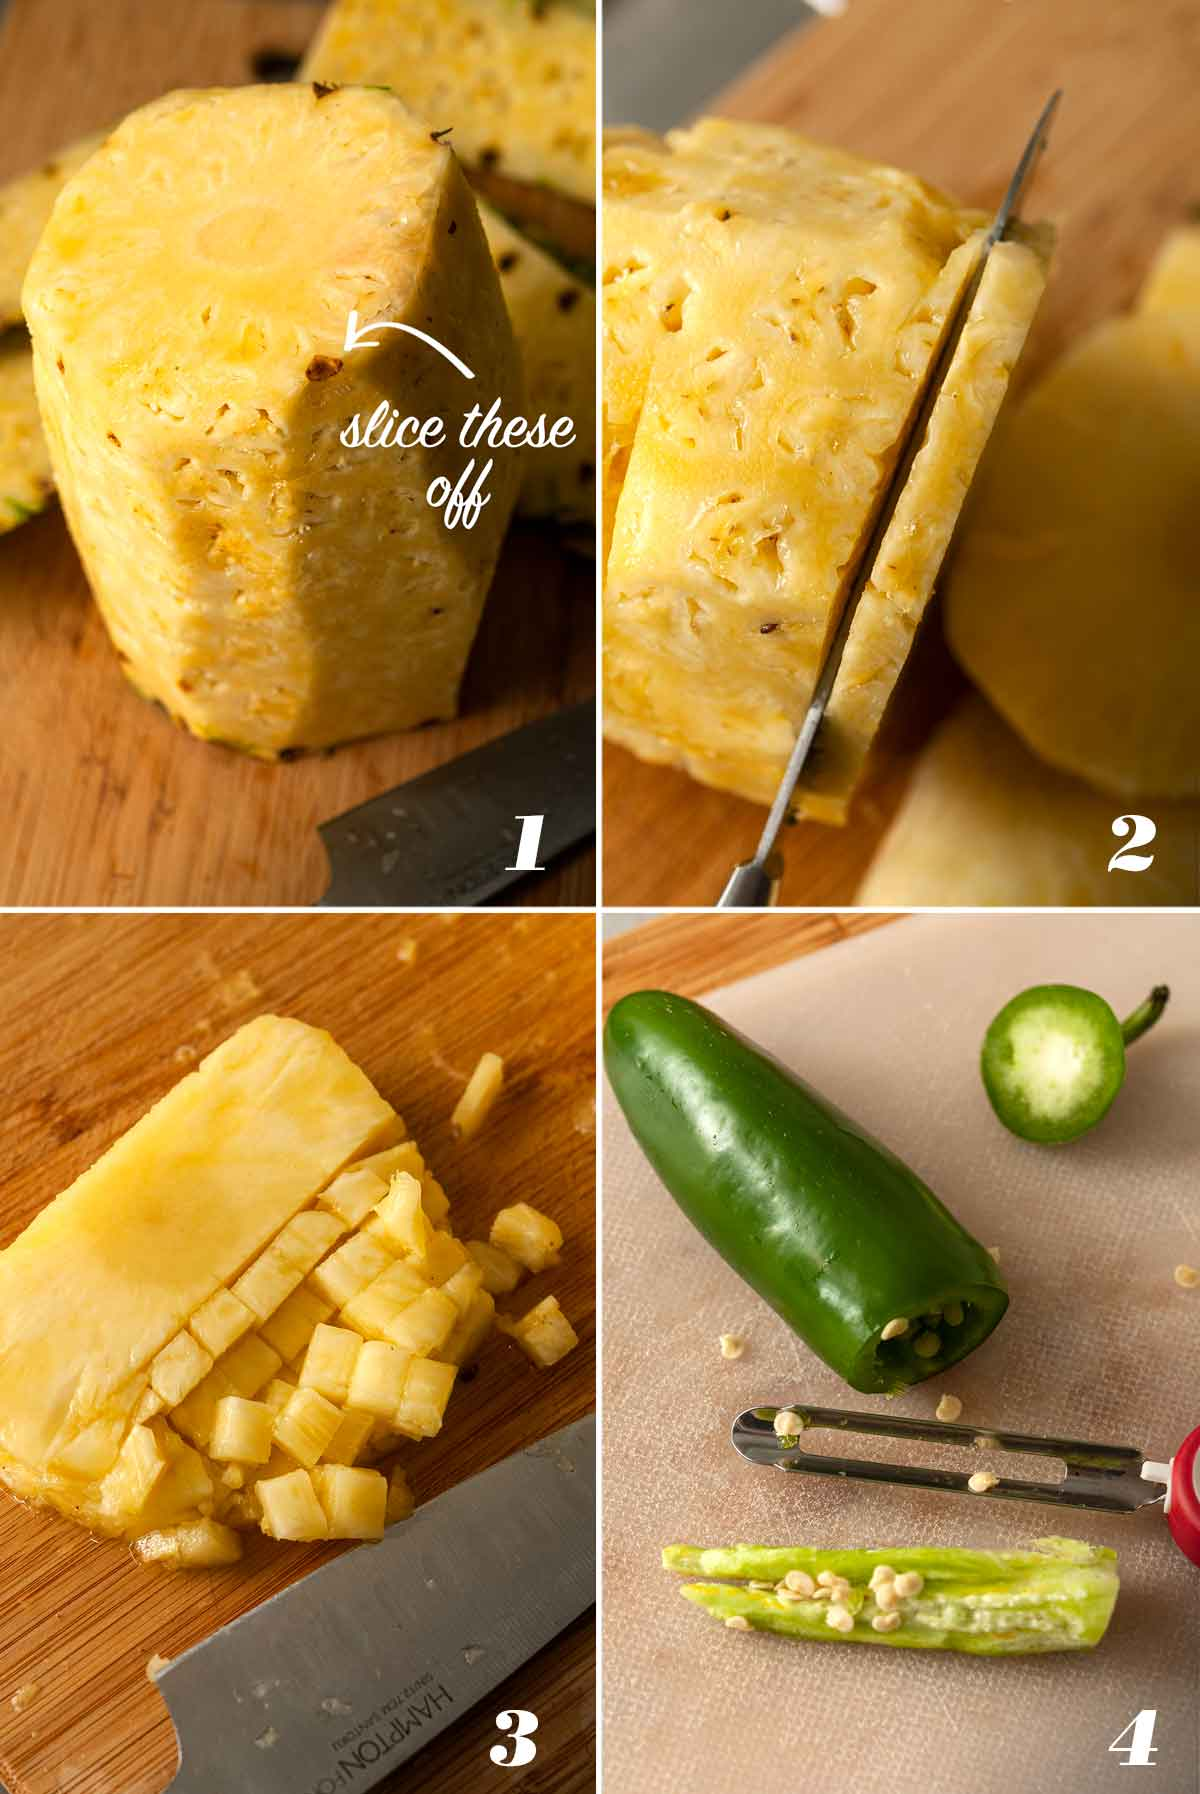 A collage of 4 numbered images showing how to prepare ingredients for salsa.